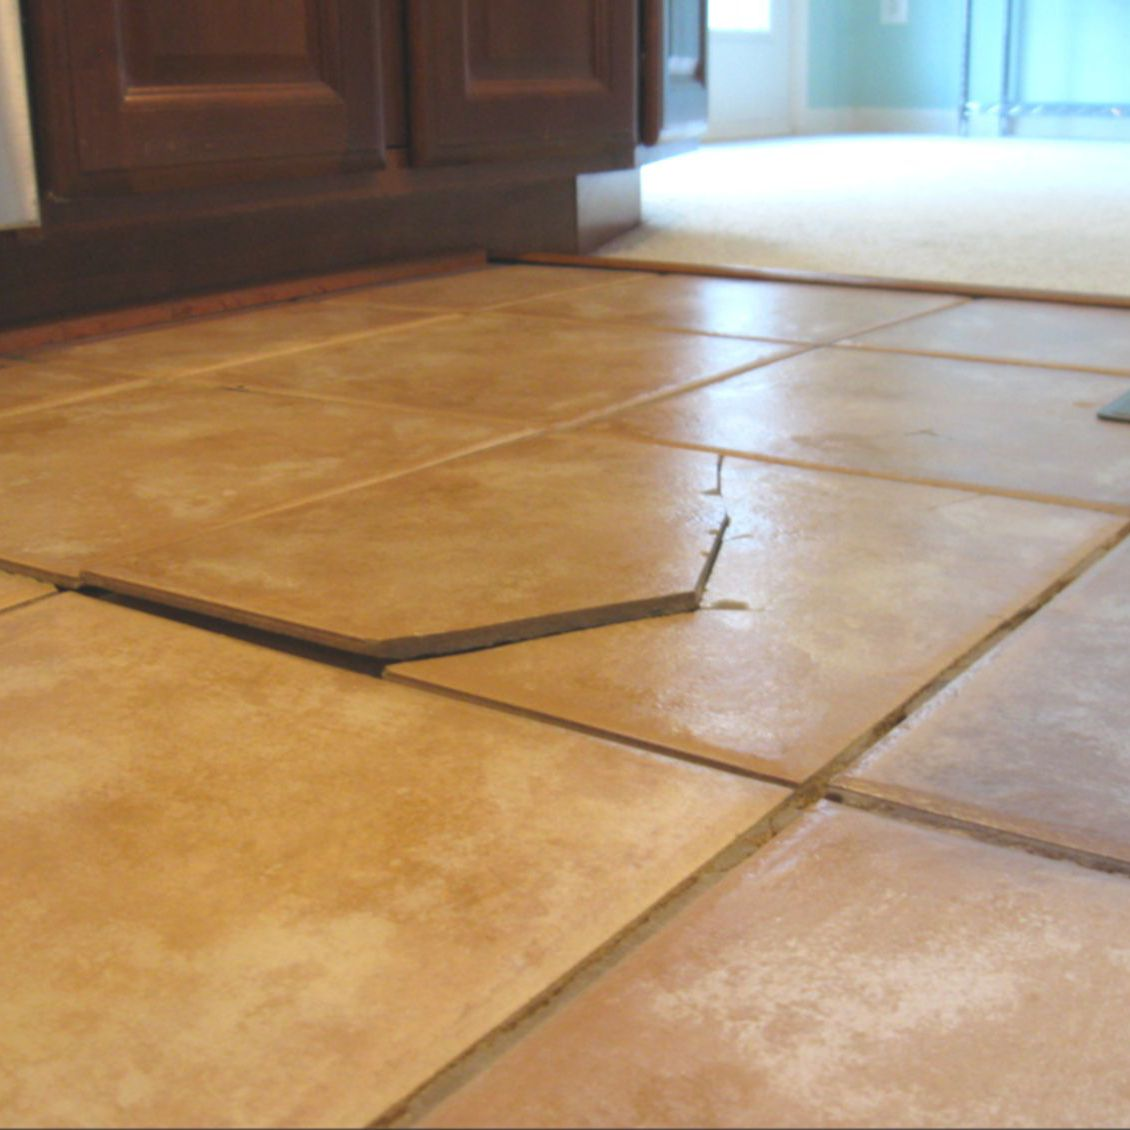 Reasons For Ed Floor And Wall Tile